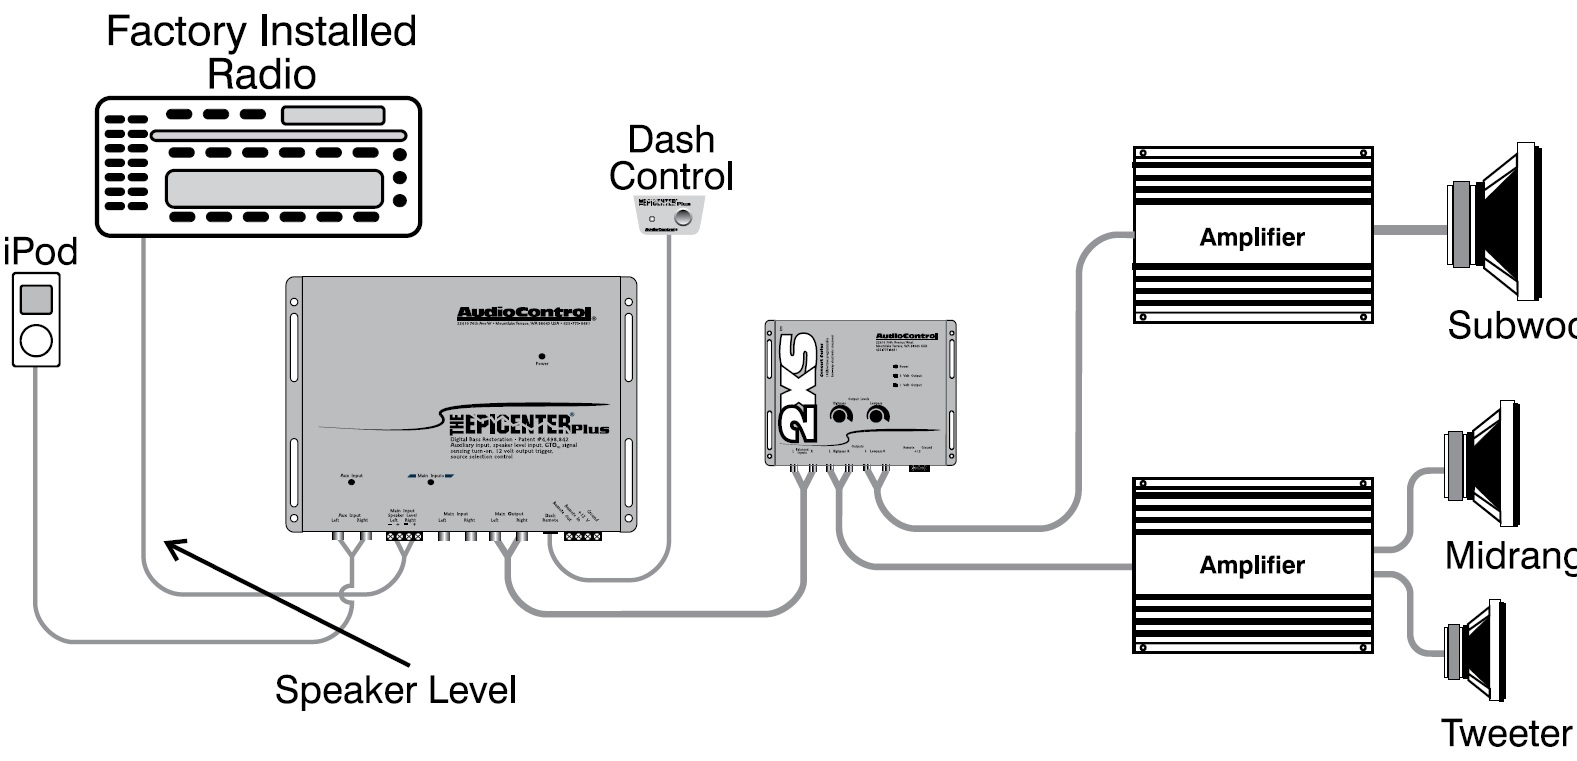 epicenterplus_simpleinstall car application diagrams audiocontrol line loc switch wiring diagram at gsmx.co